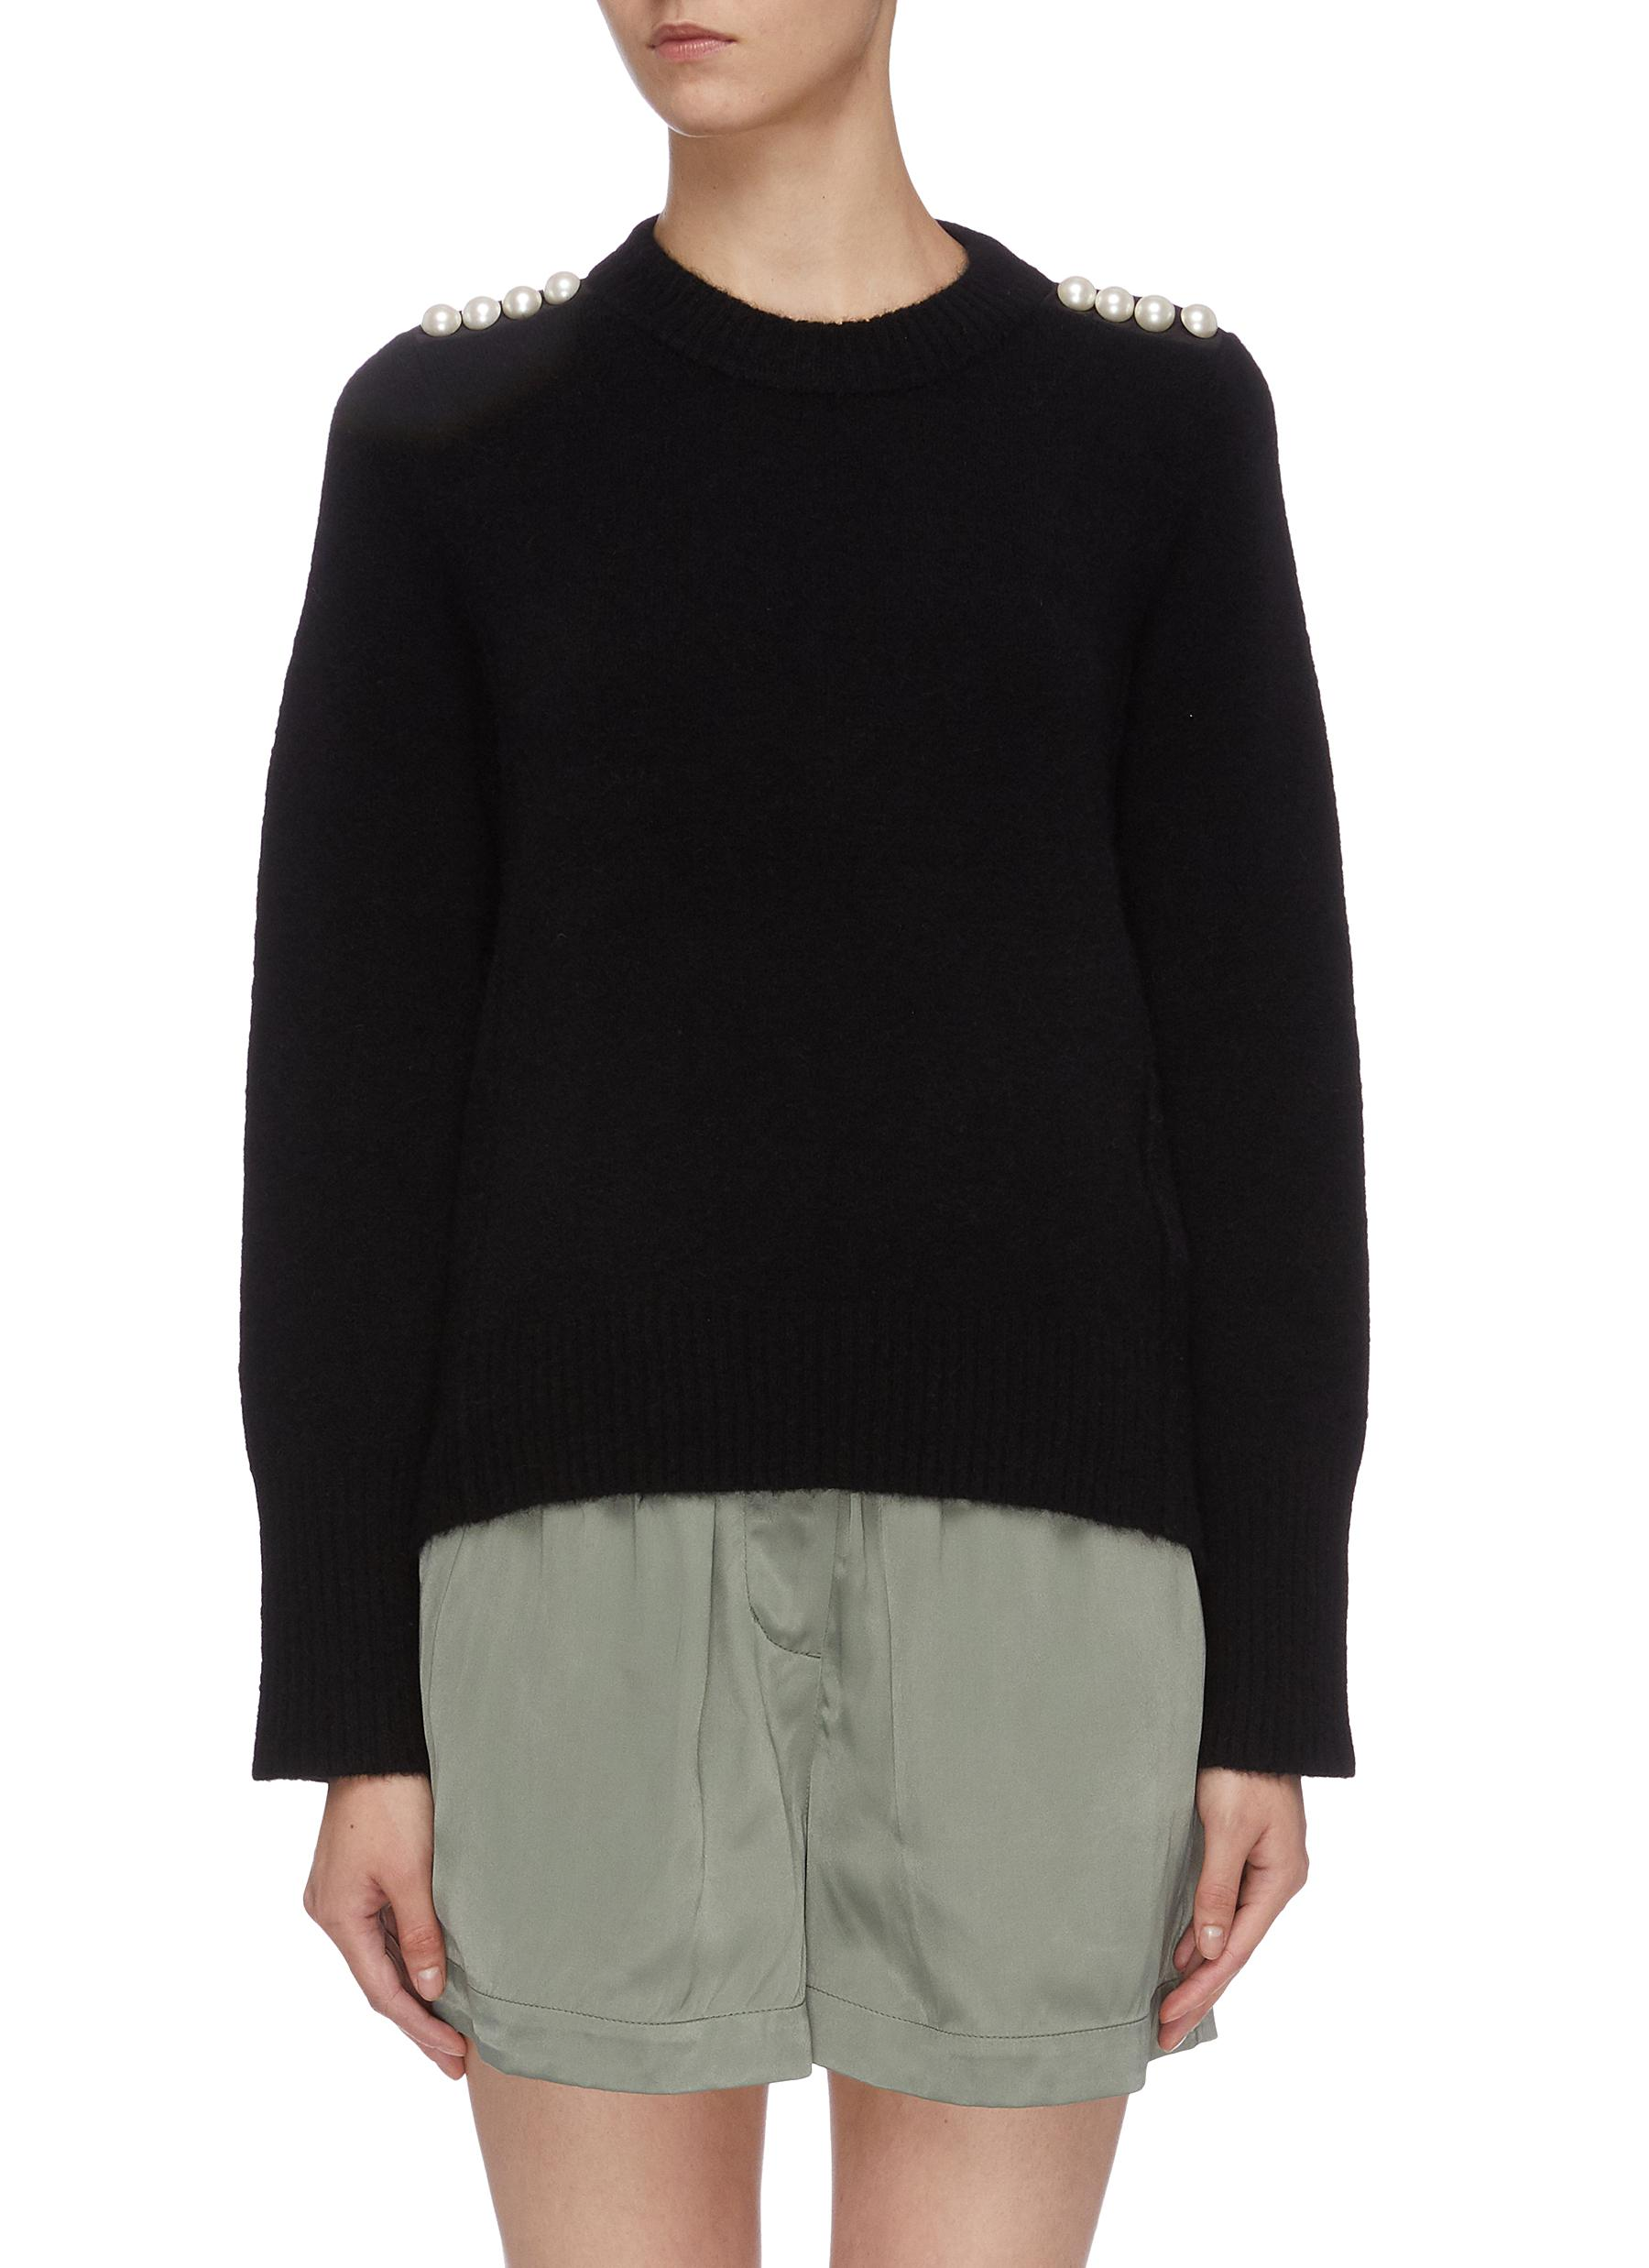 Faux pearl shoulder sweater by 3.1 Phillip Lim